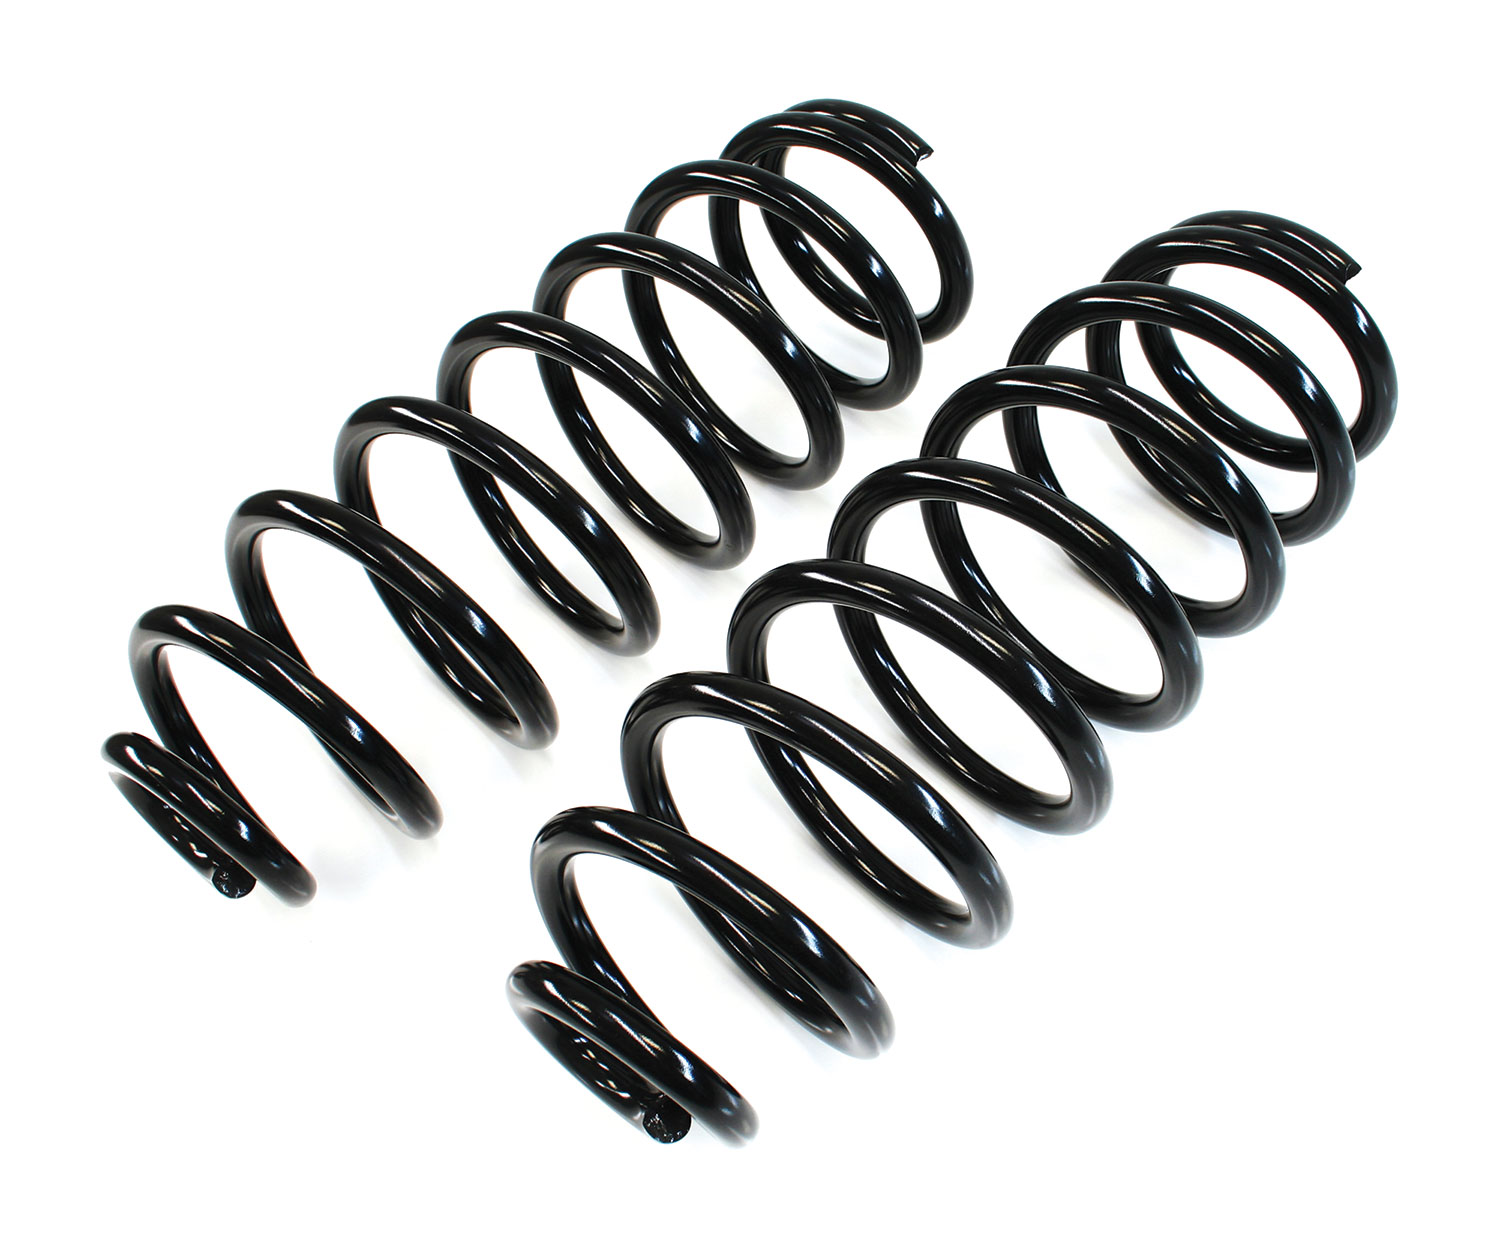 Teraflex Rear Coil Springs 1.5in - JK 2DR